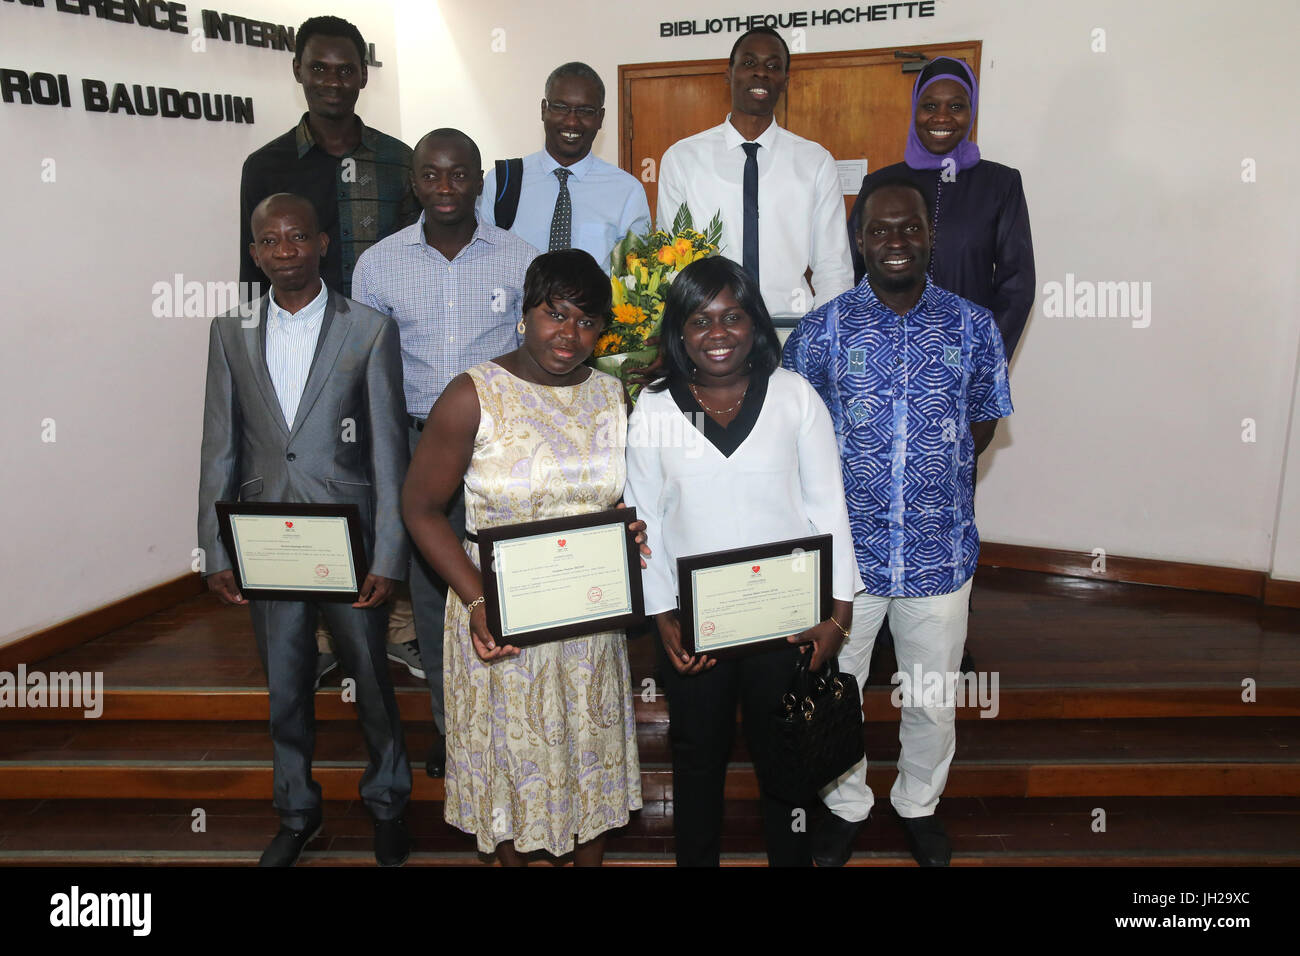 The Heart Institute.  Senegalese medical team trained to practice cardiac surgery. Graduation ceremony.  Ho Chi - Stock Image